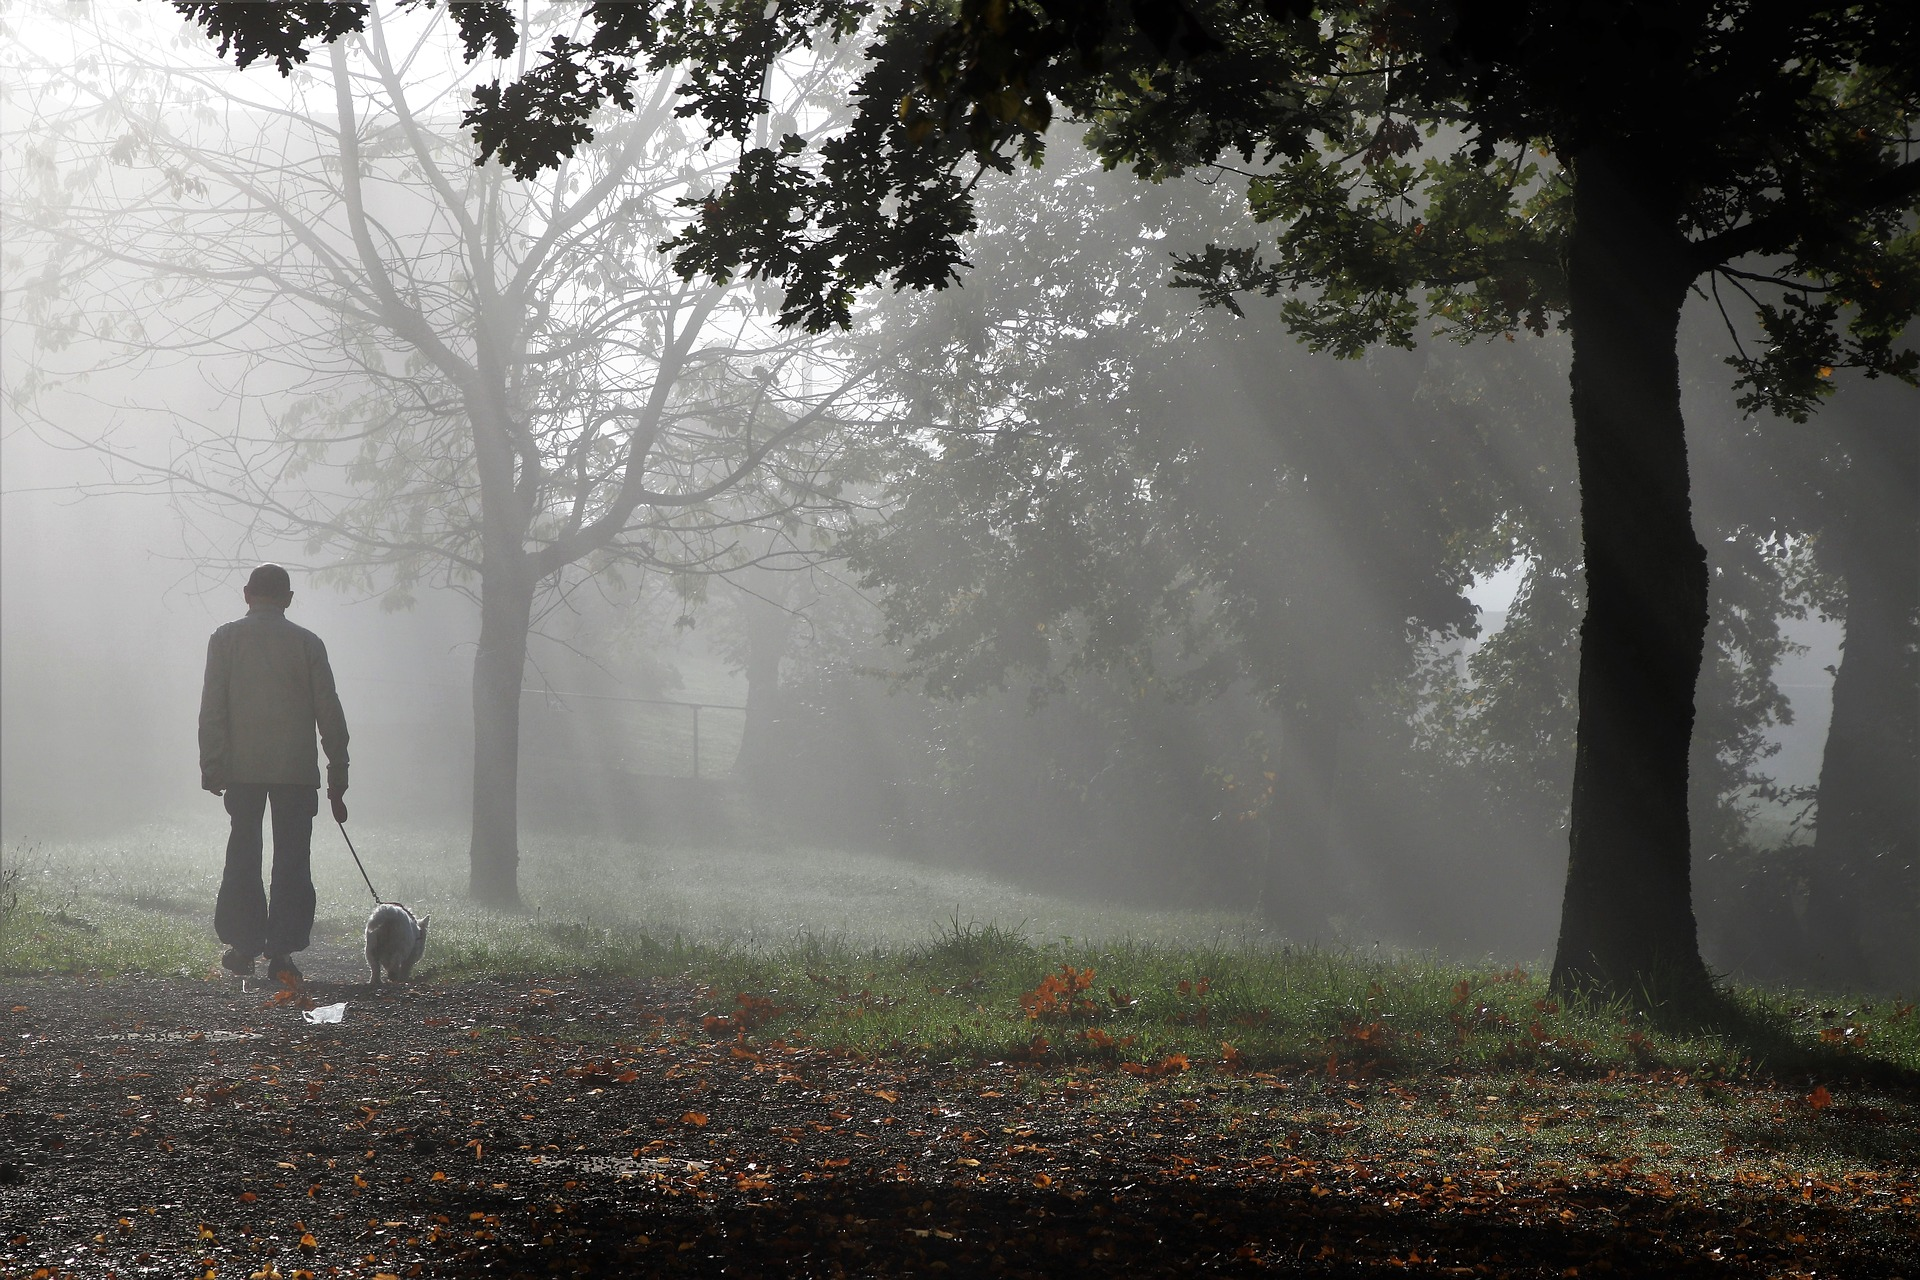 An older person walking a dog in a foggy park. Image courtesy: pasja1000 via Pixabay